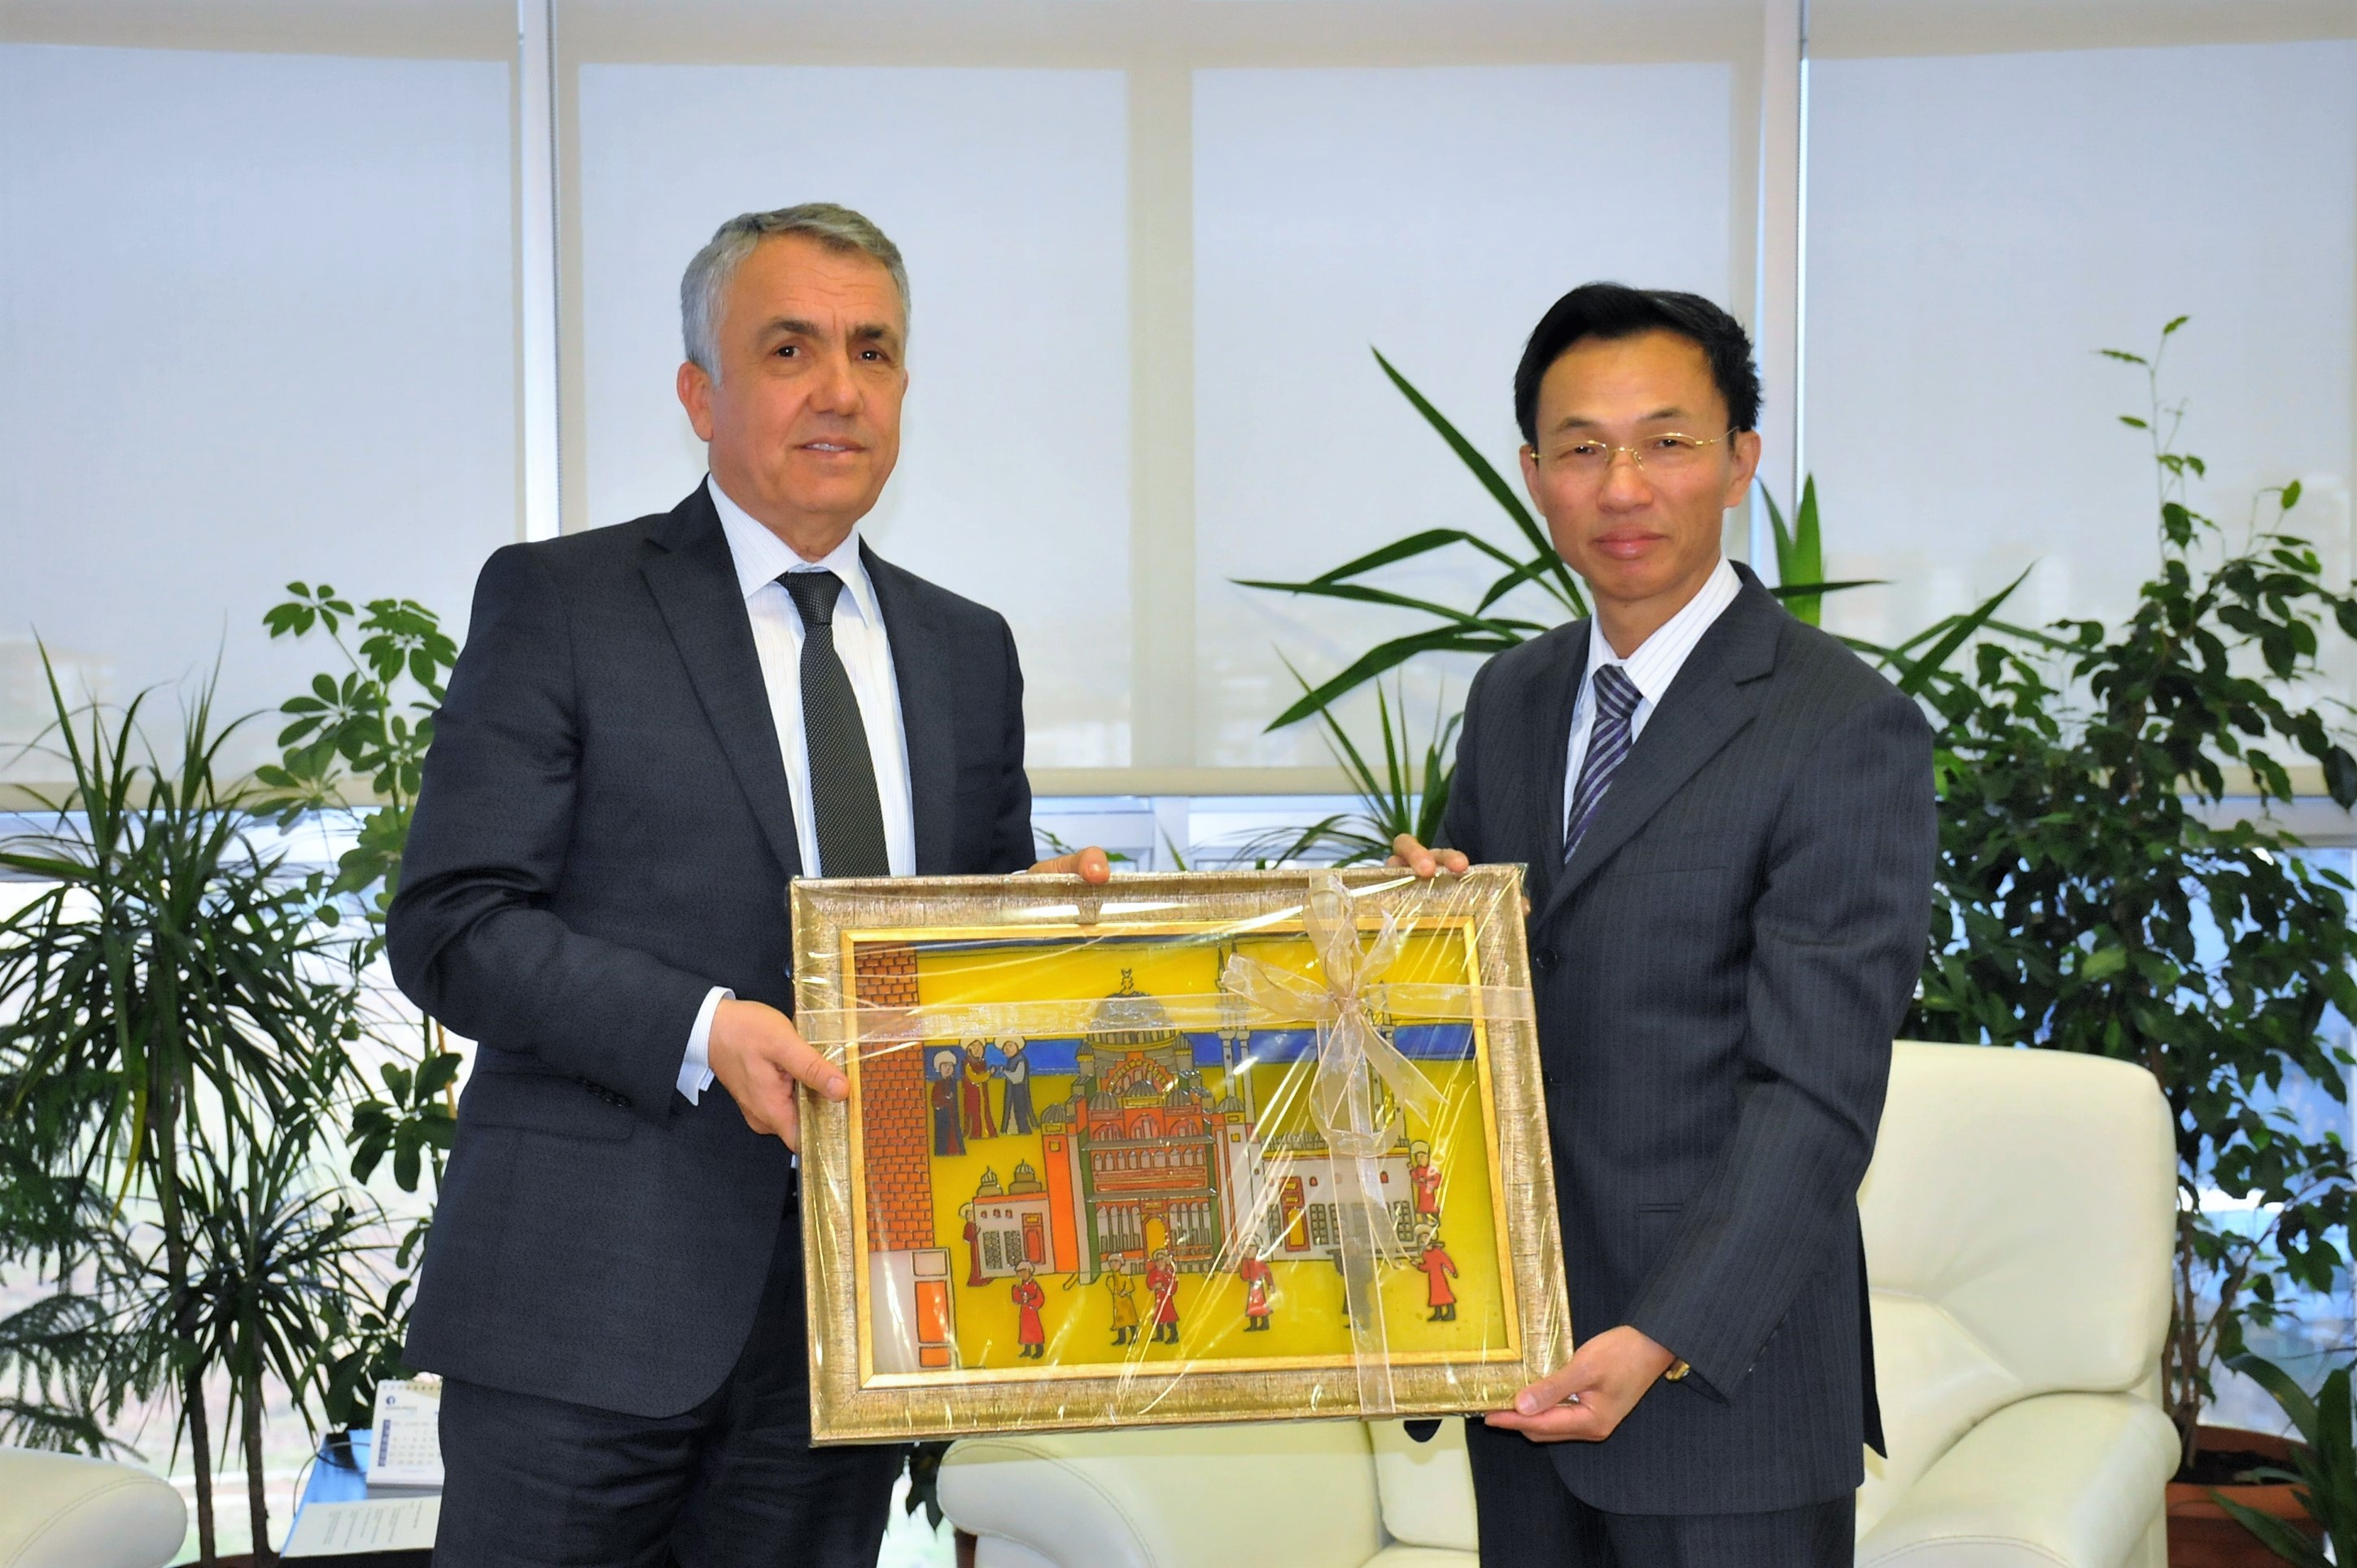 http://www.omu.edu.tr/sites/default/files/files/ambassador_of_the_peoples_republic_of_china_visits_rector_bilgic/dsc_0033.jpg